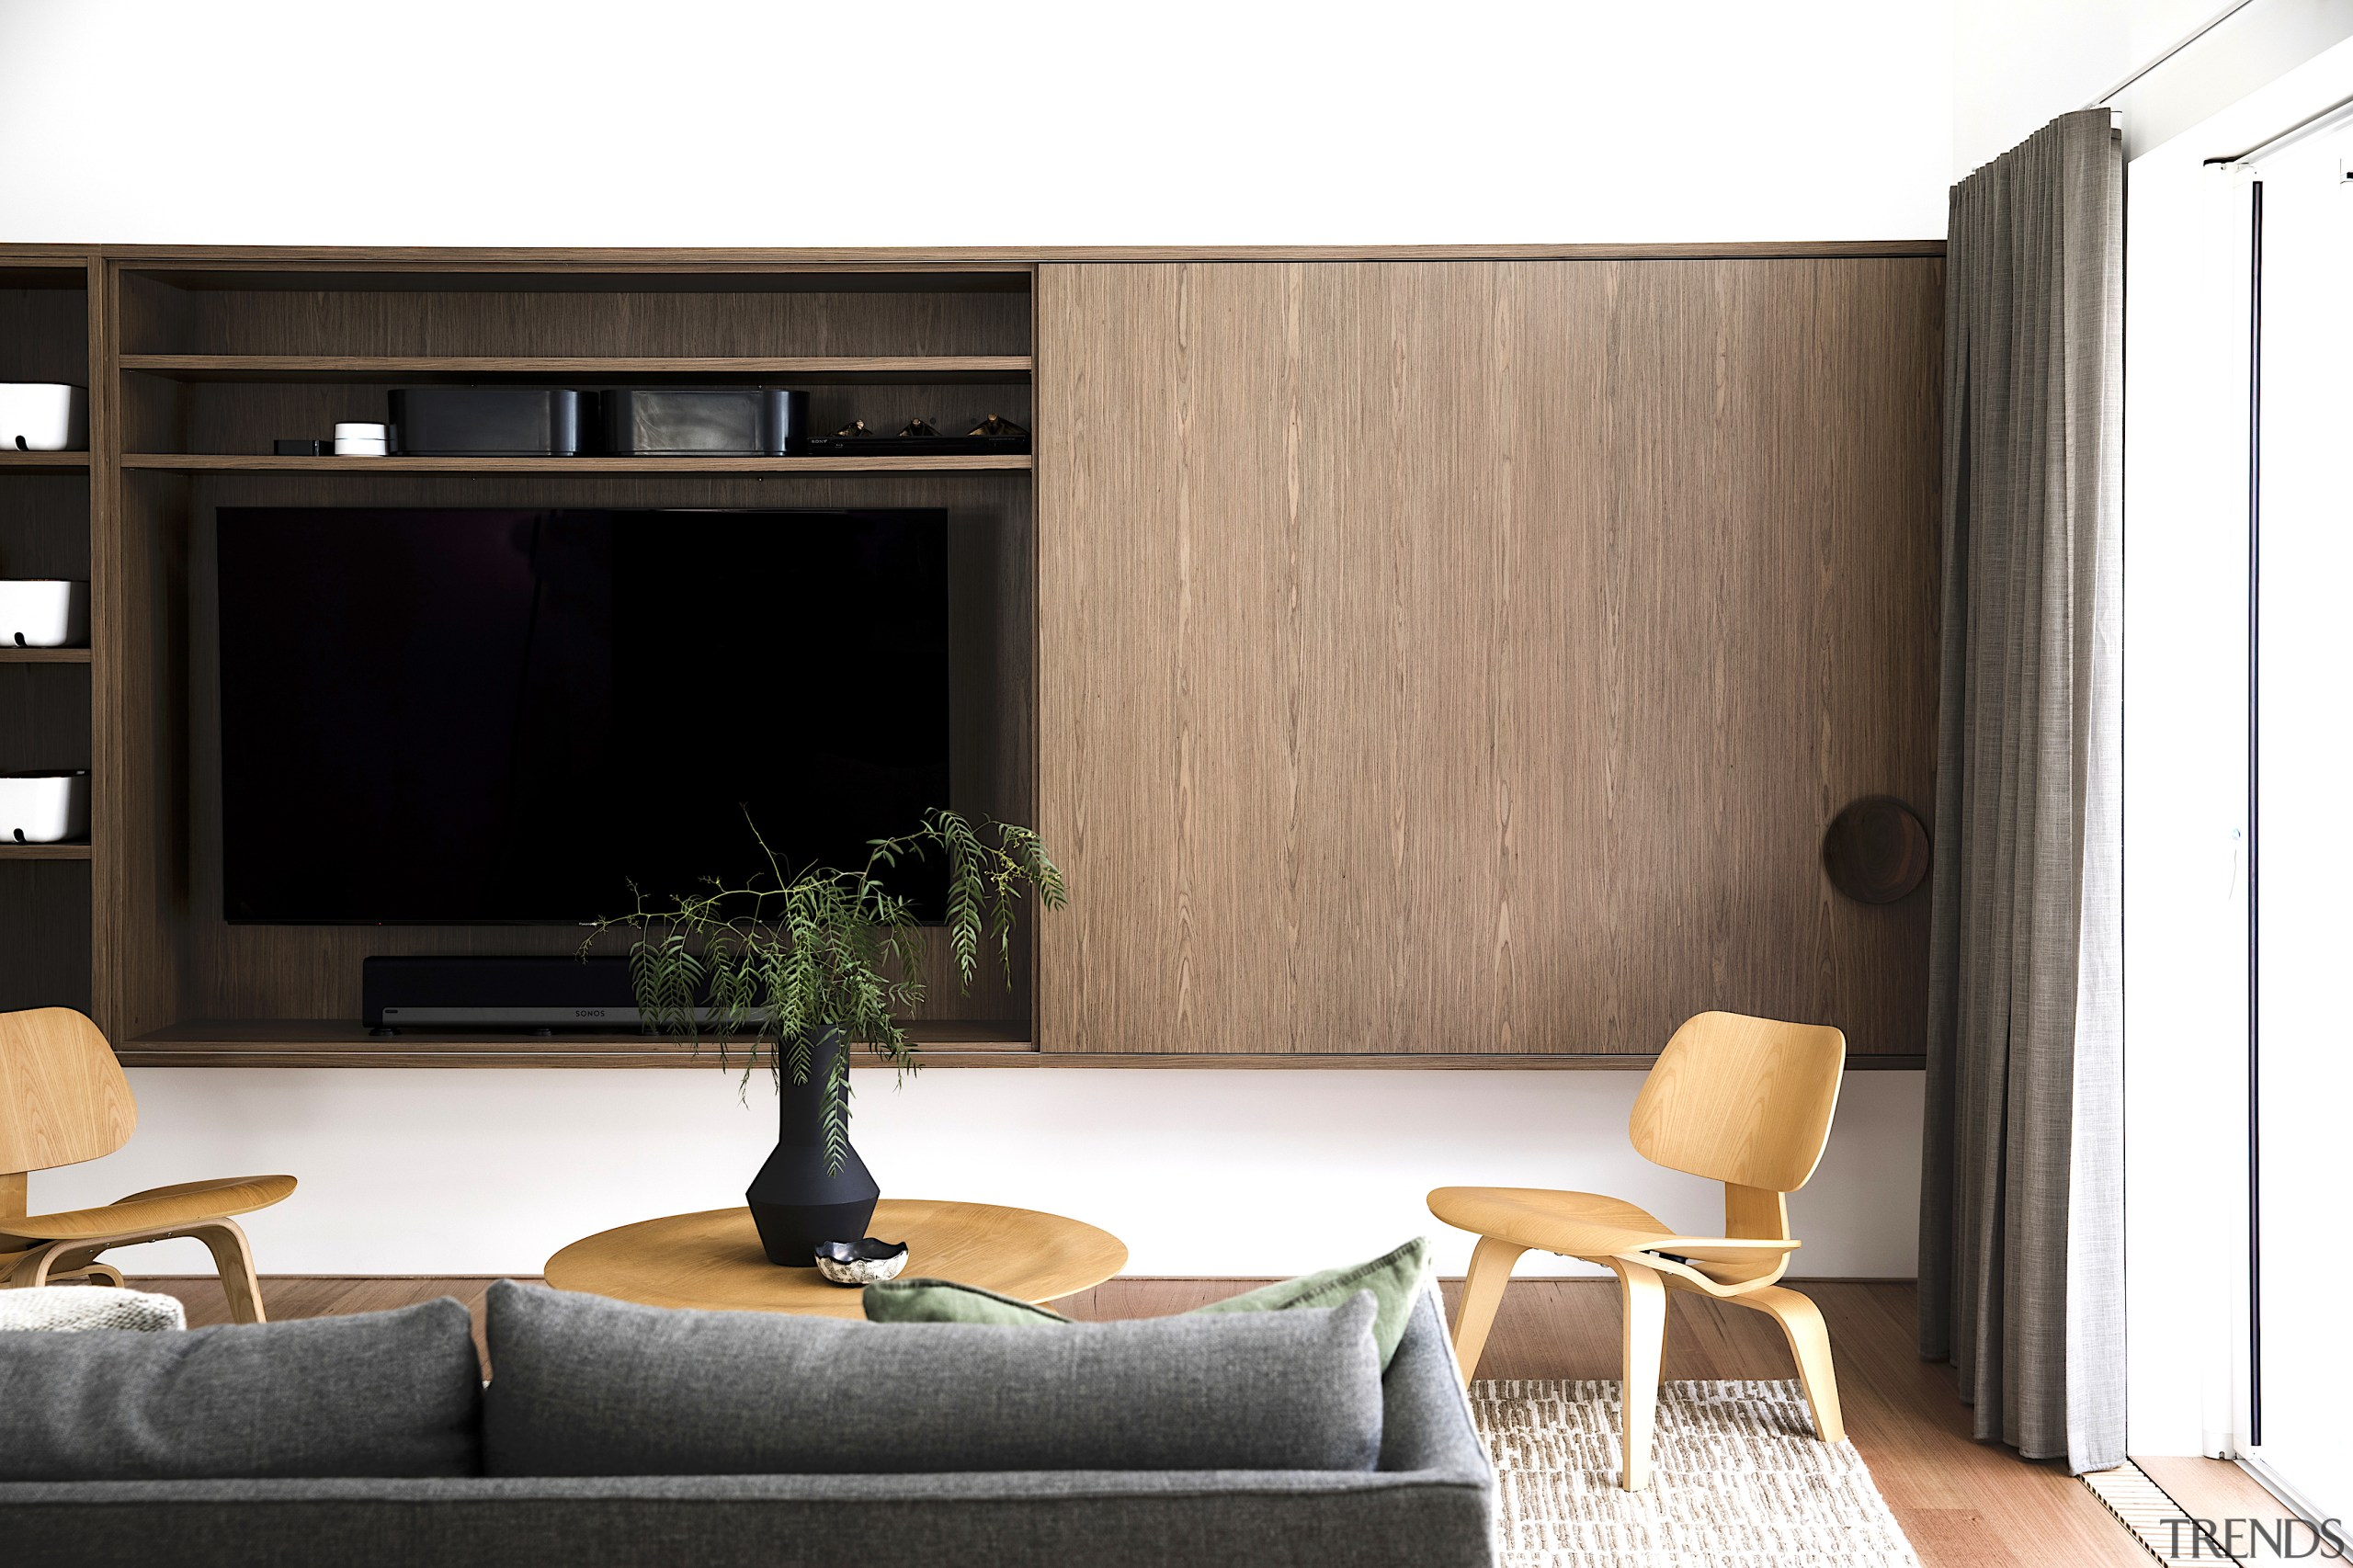 Bespoke walnut cabinetry offers handy living space functionality